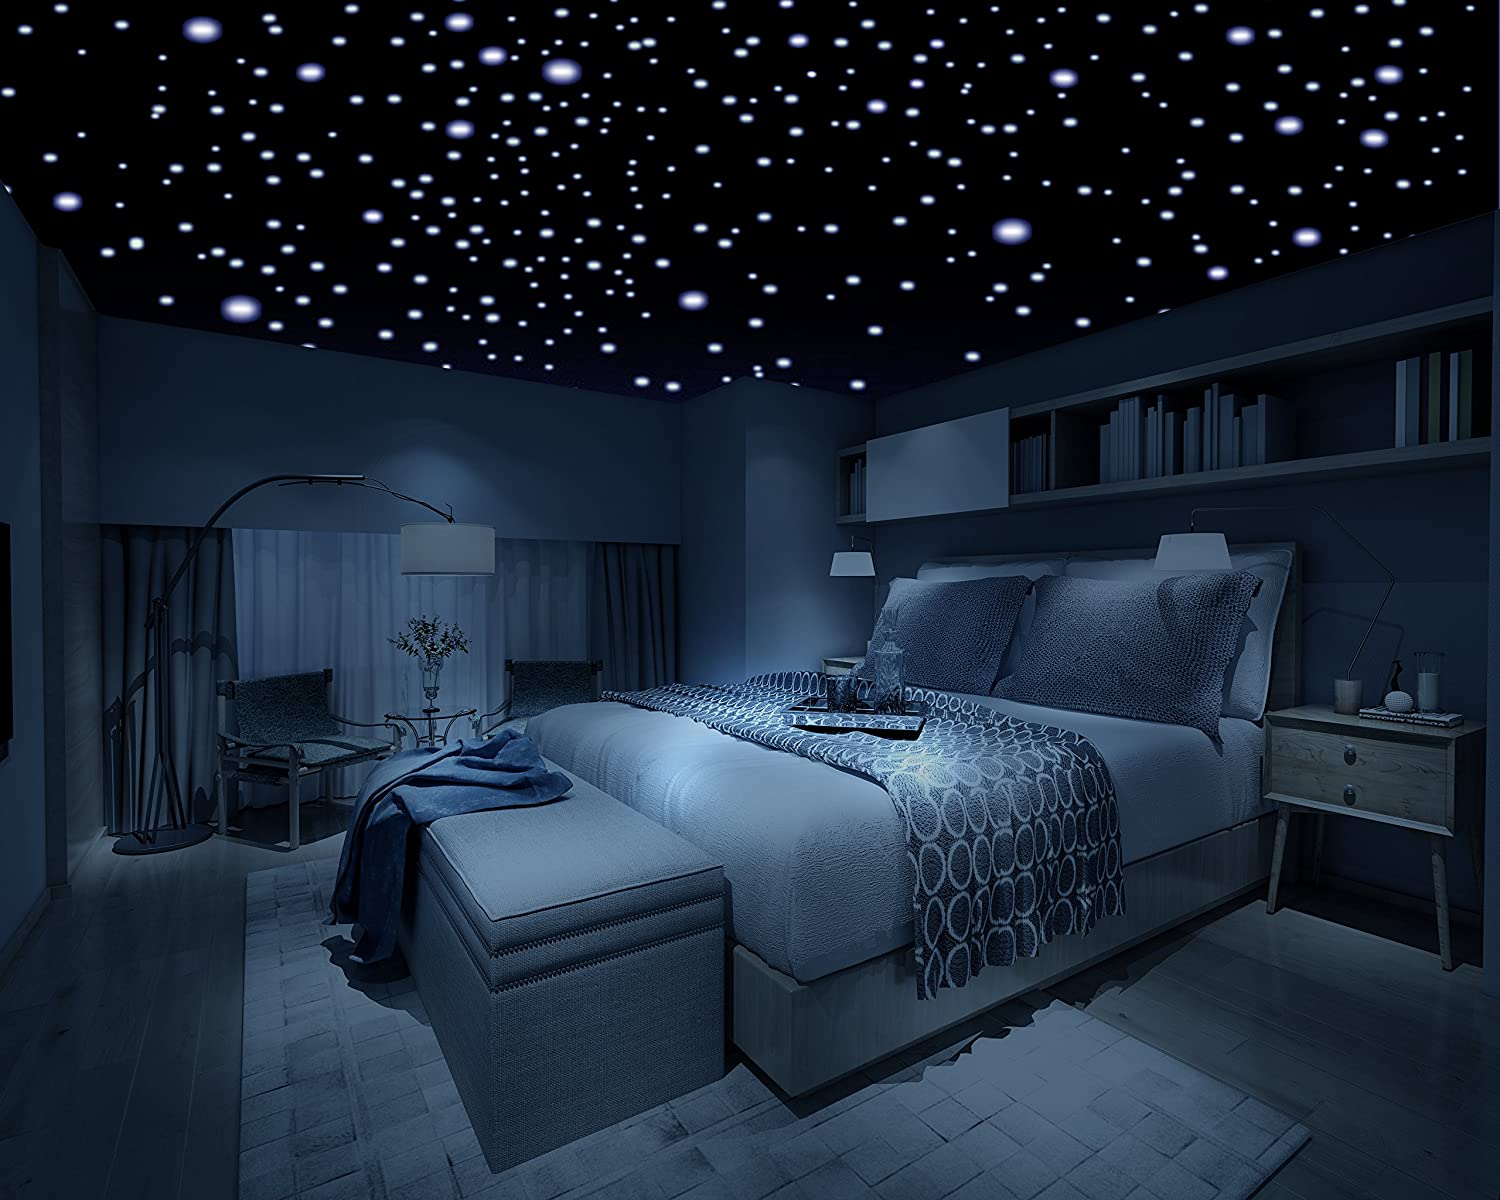 Bedroom ceiling lights stars - Firefly Realistic 3d Domed Glow In The Dark Stars 600 Stars